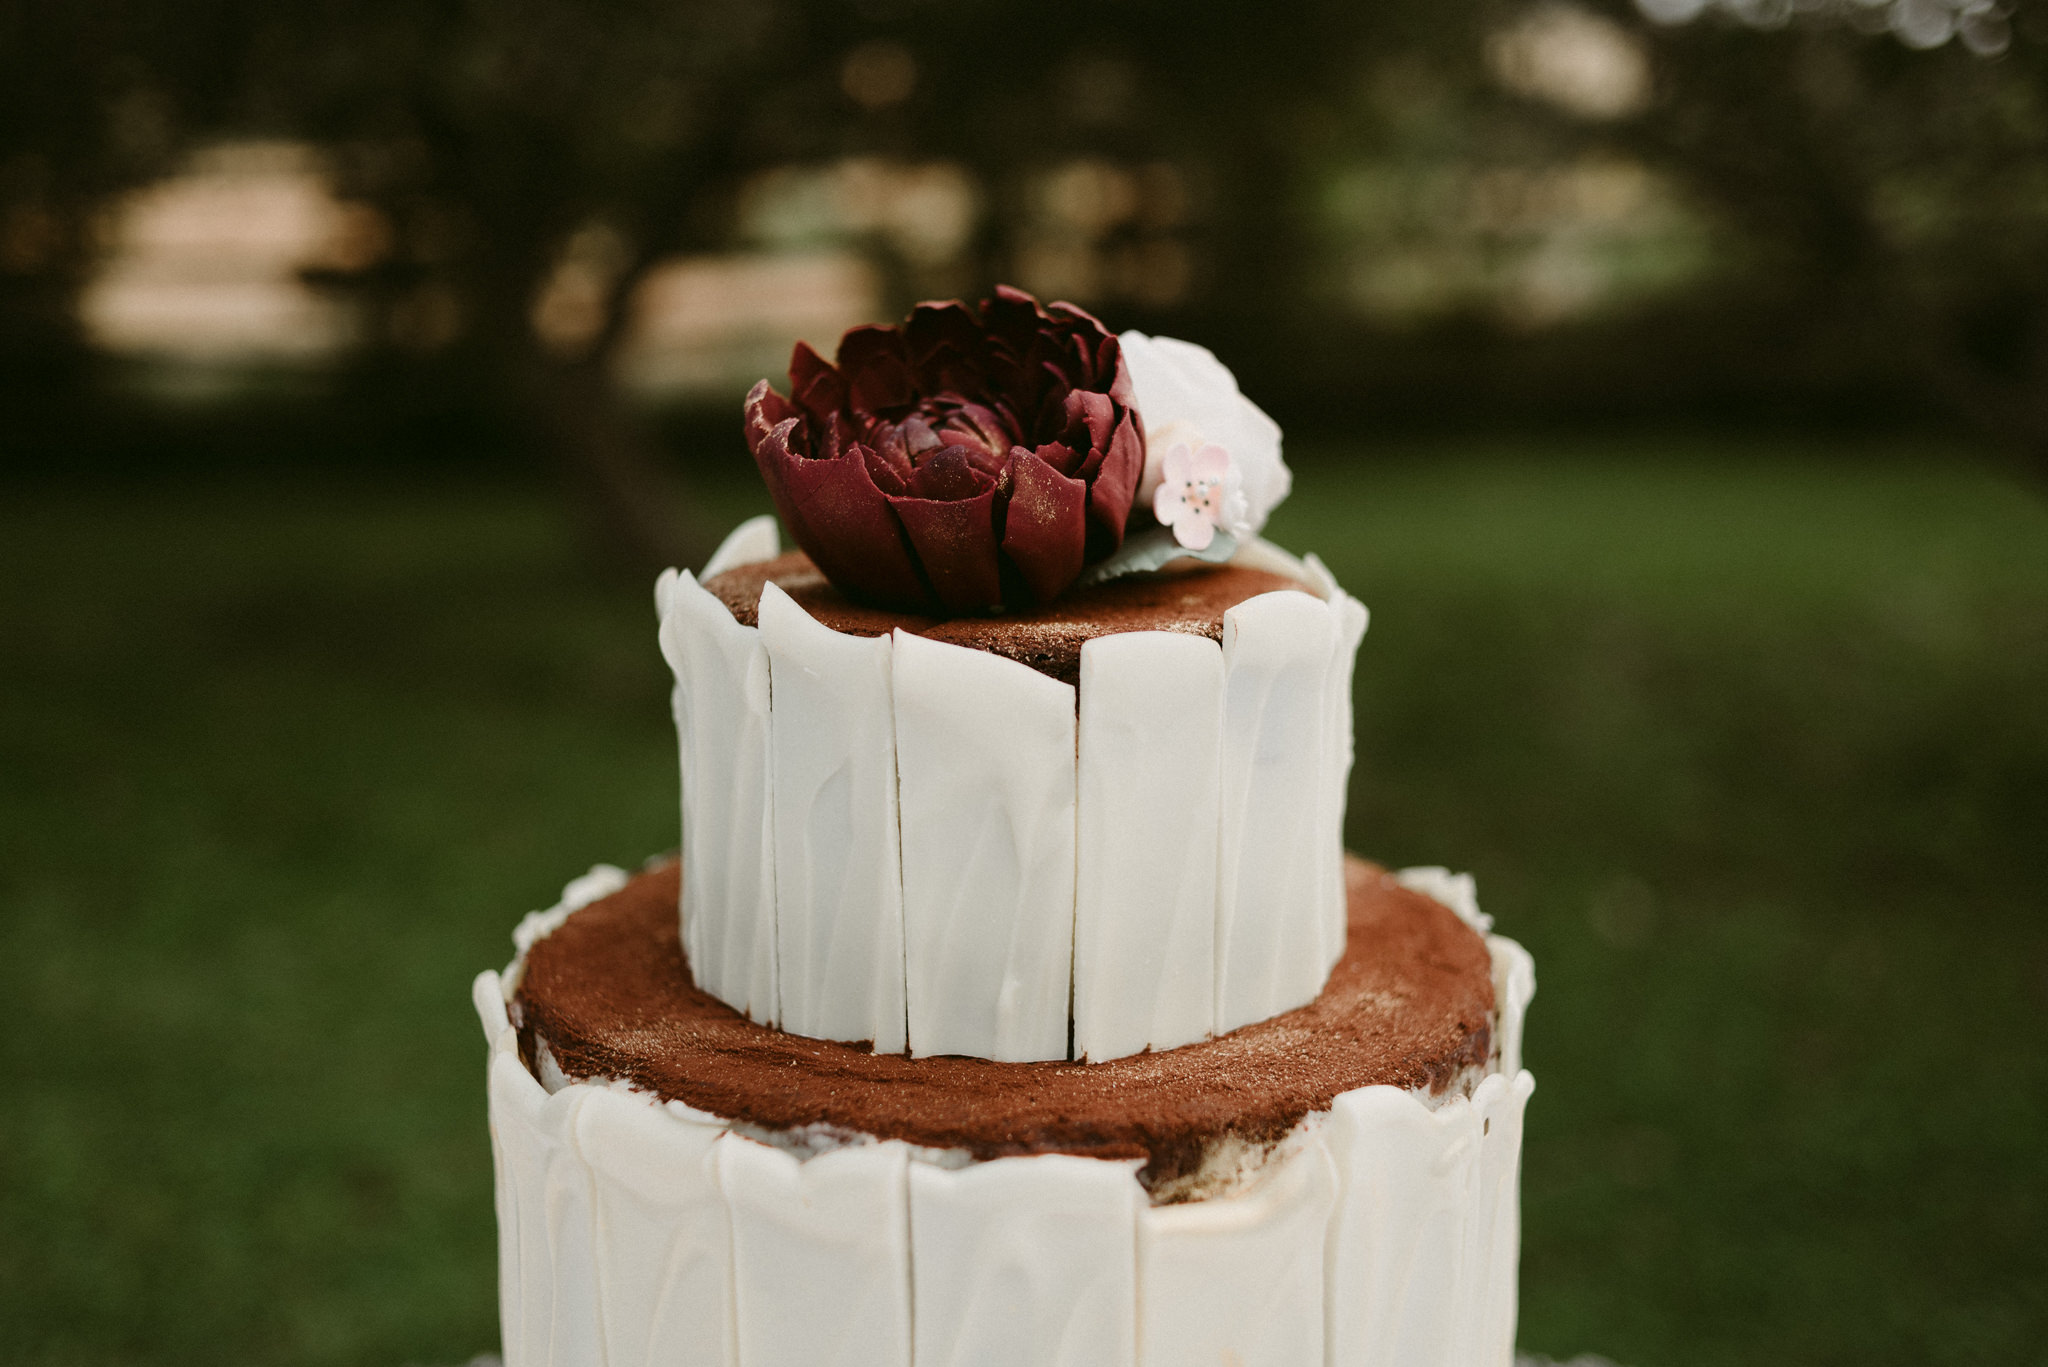 Homemade chocolate wedding cake topped with flowers